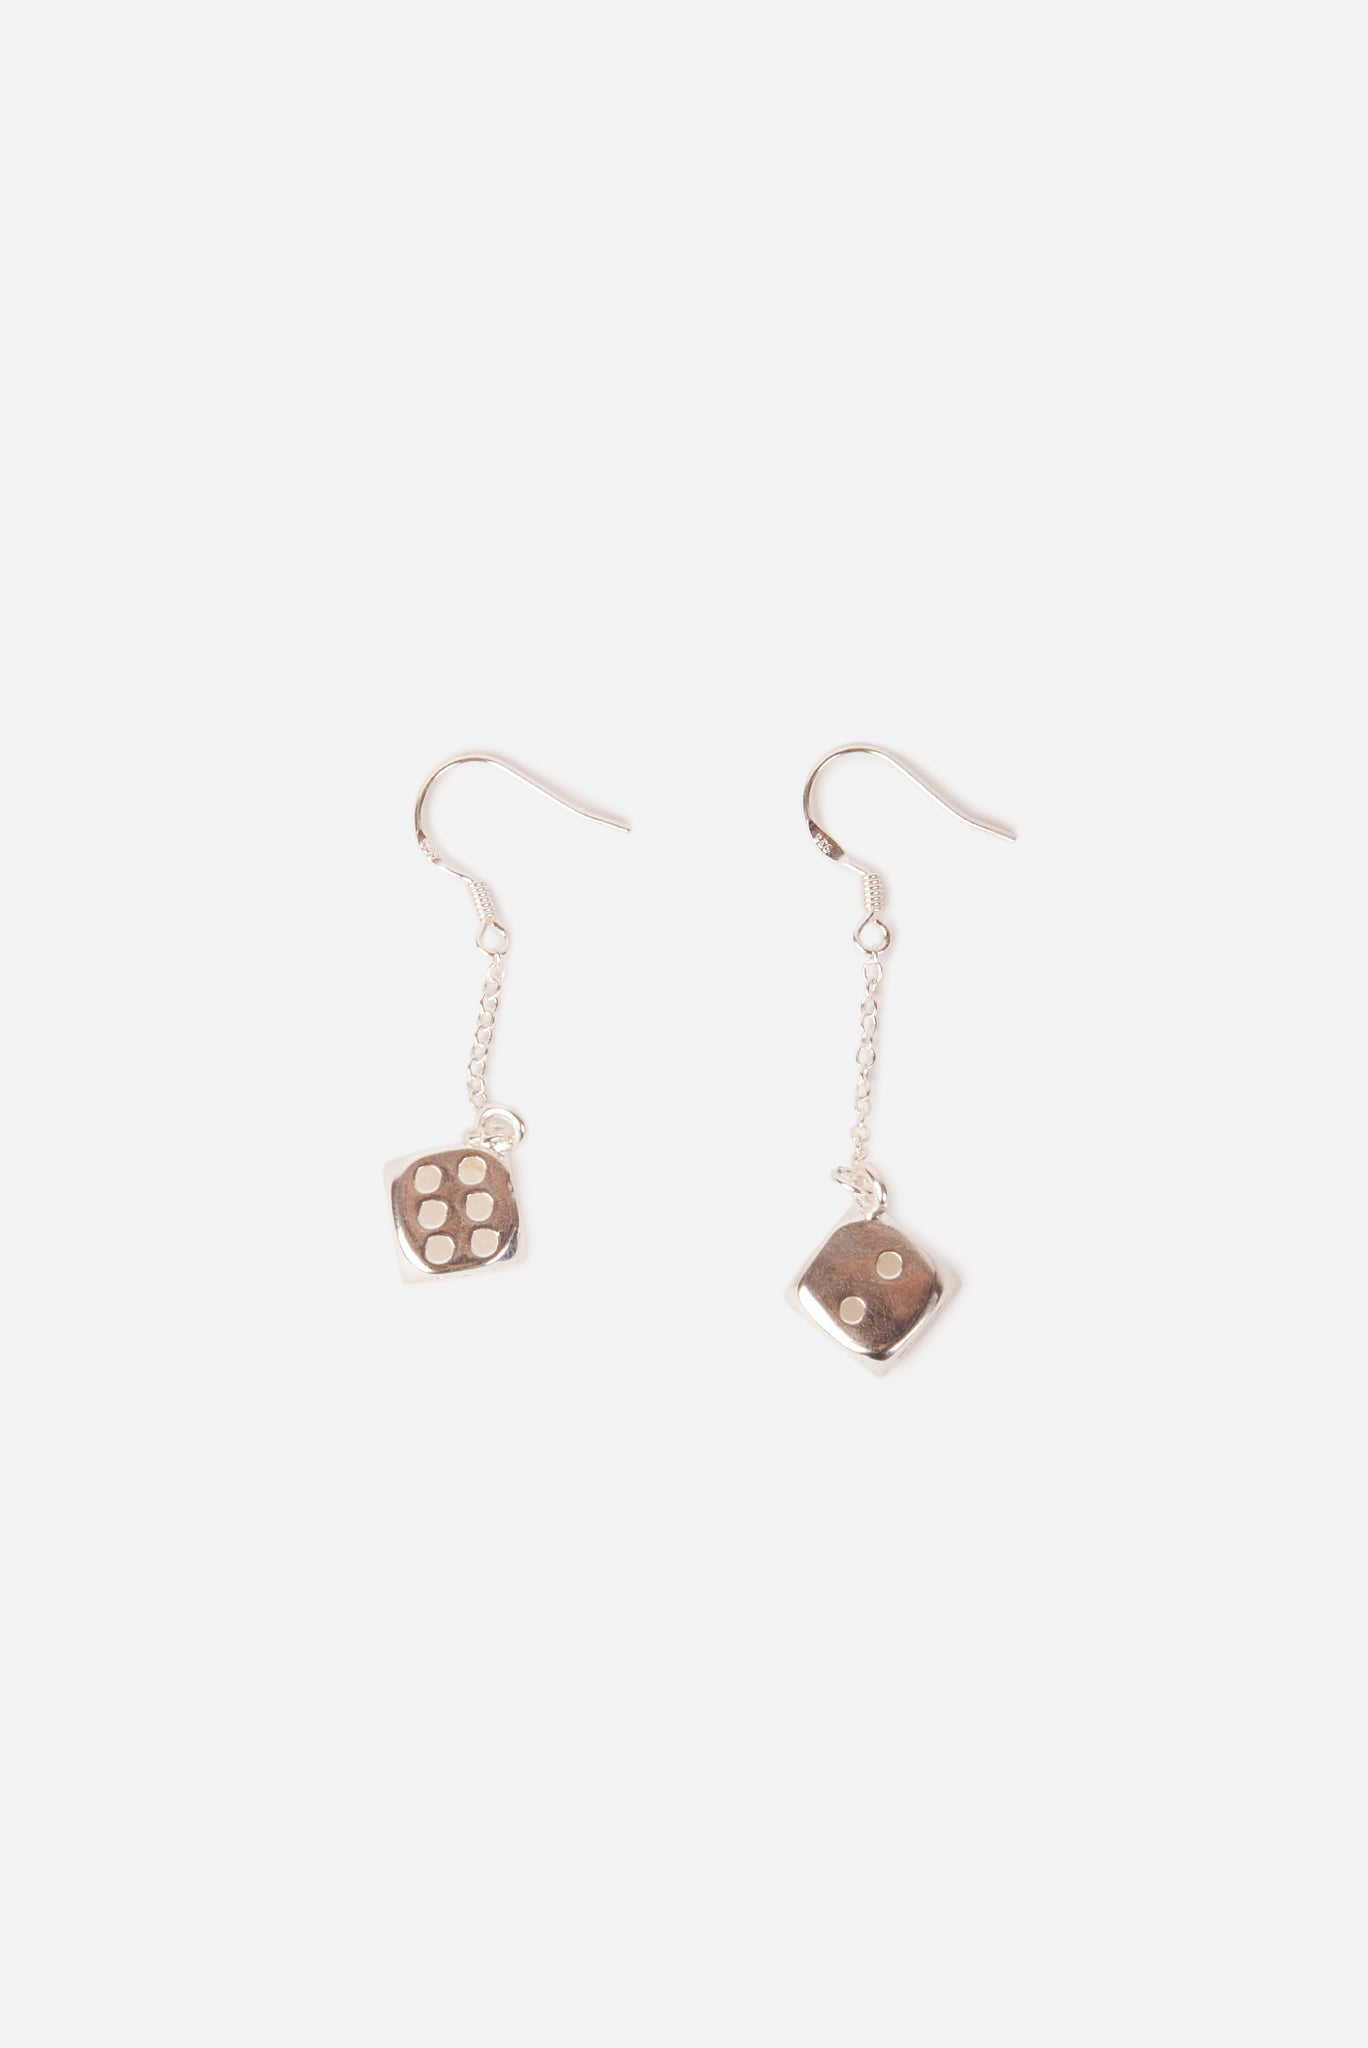 Lucky Streak Dice Earrings